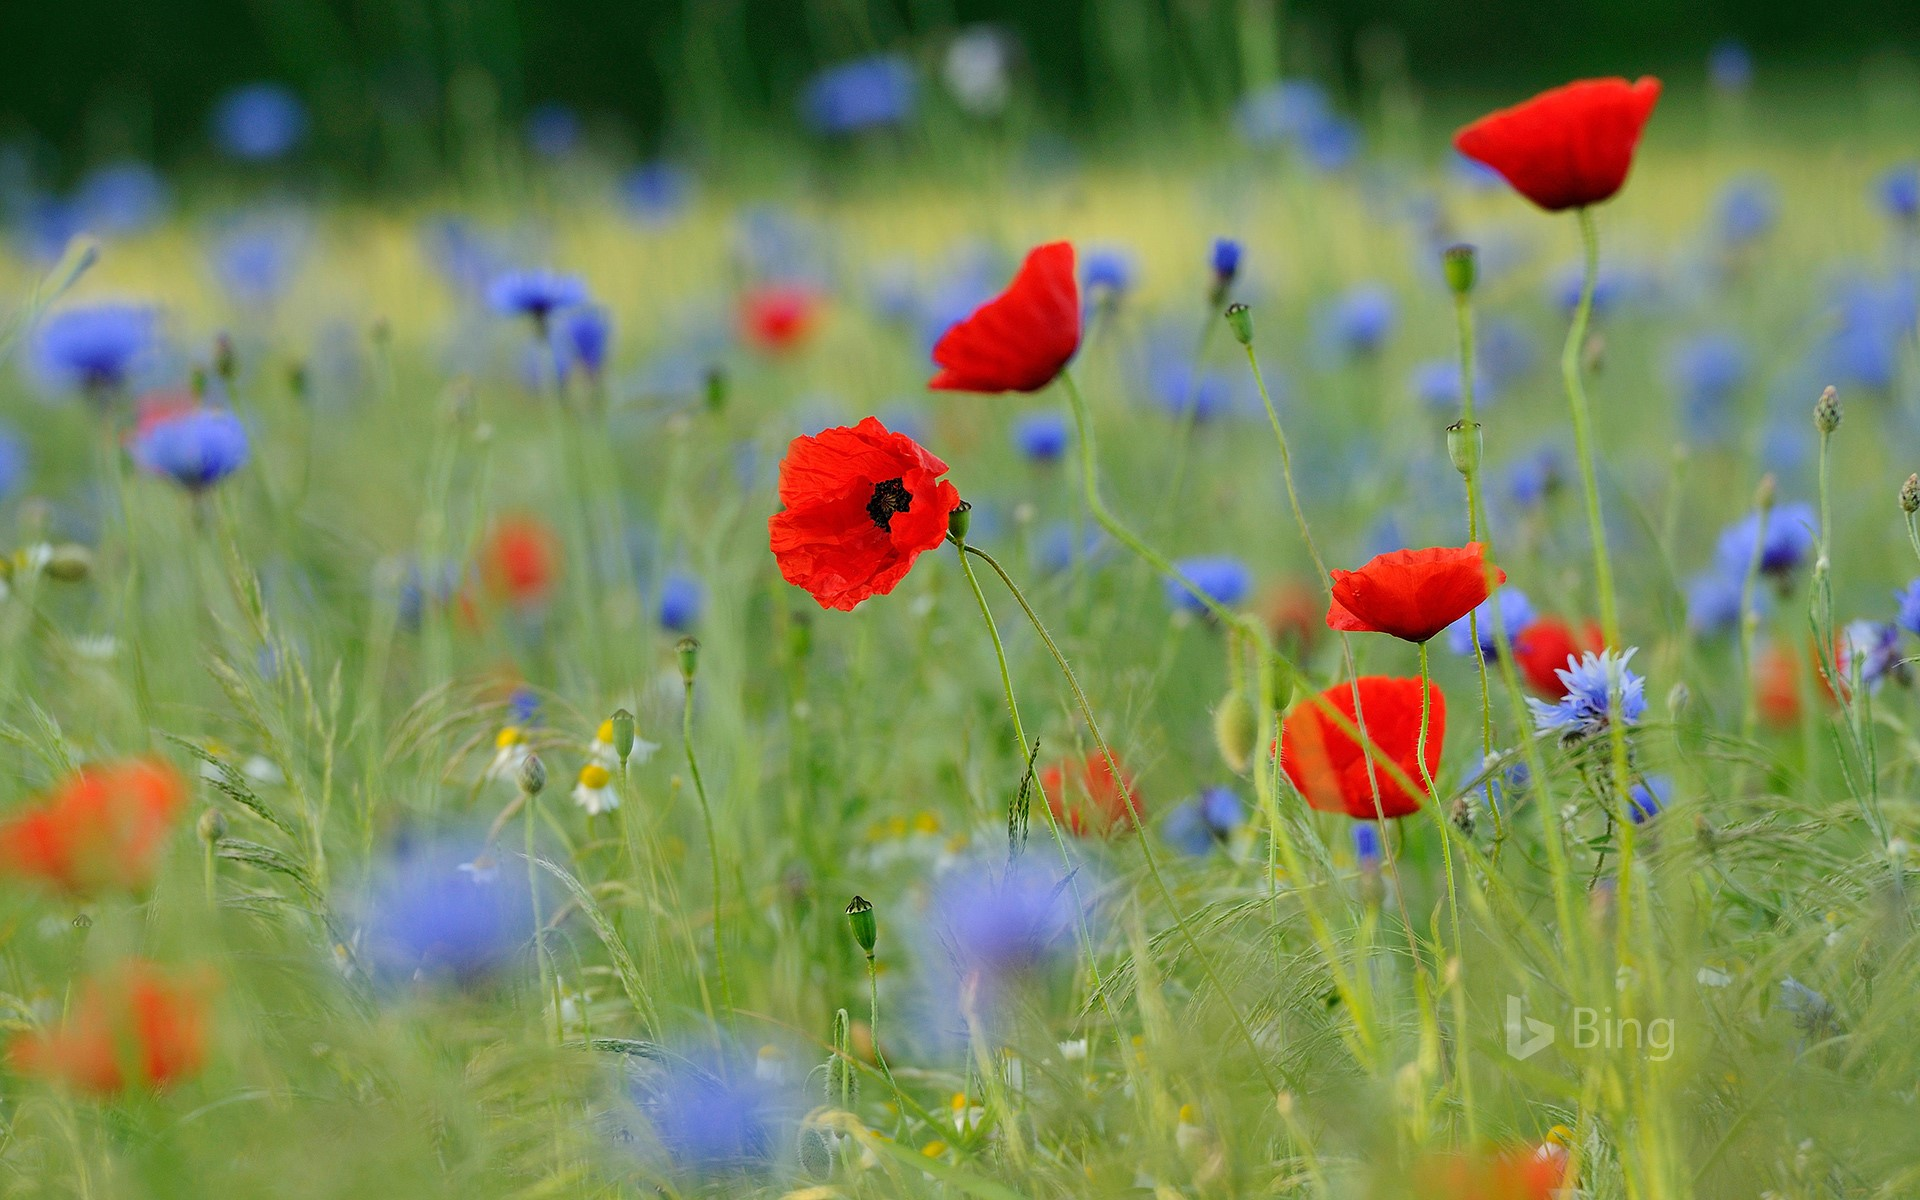 Meadow with common poppies and cornflowers, North Rhine-Westphalia, Germany